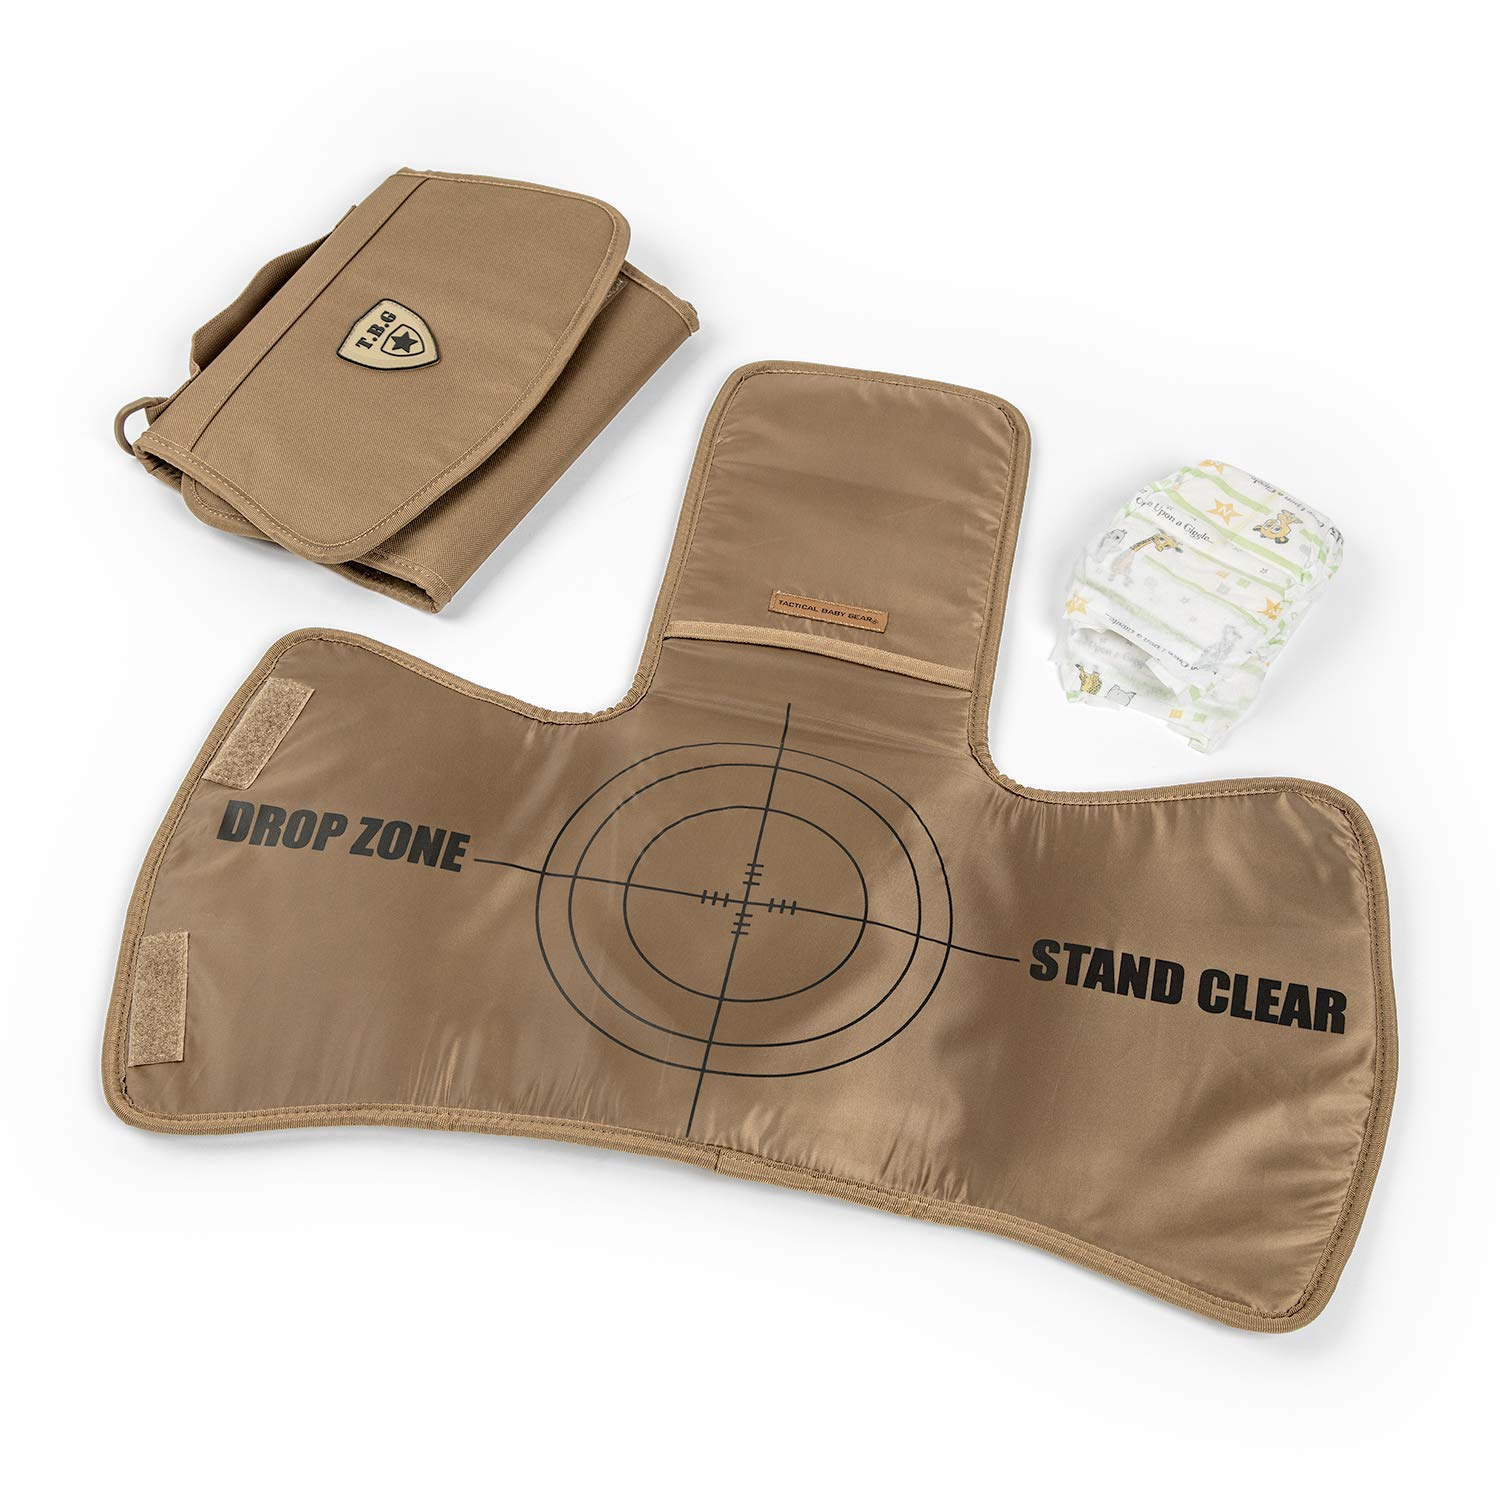 TBG - Drop Zone Folding Changin Tactical Portable Mat Changing Opening Mesa Mall large release sale